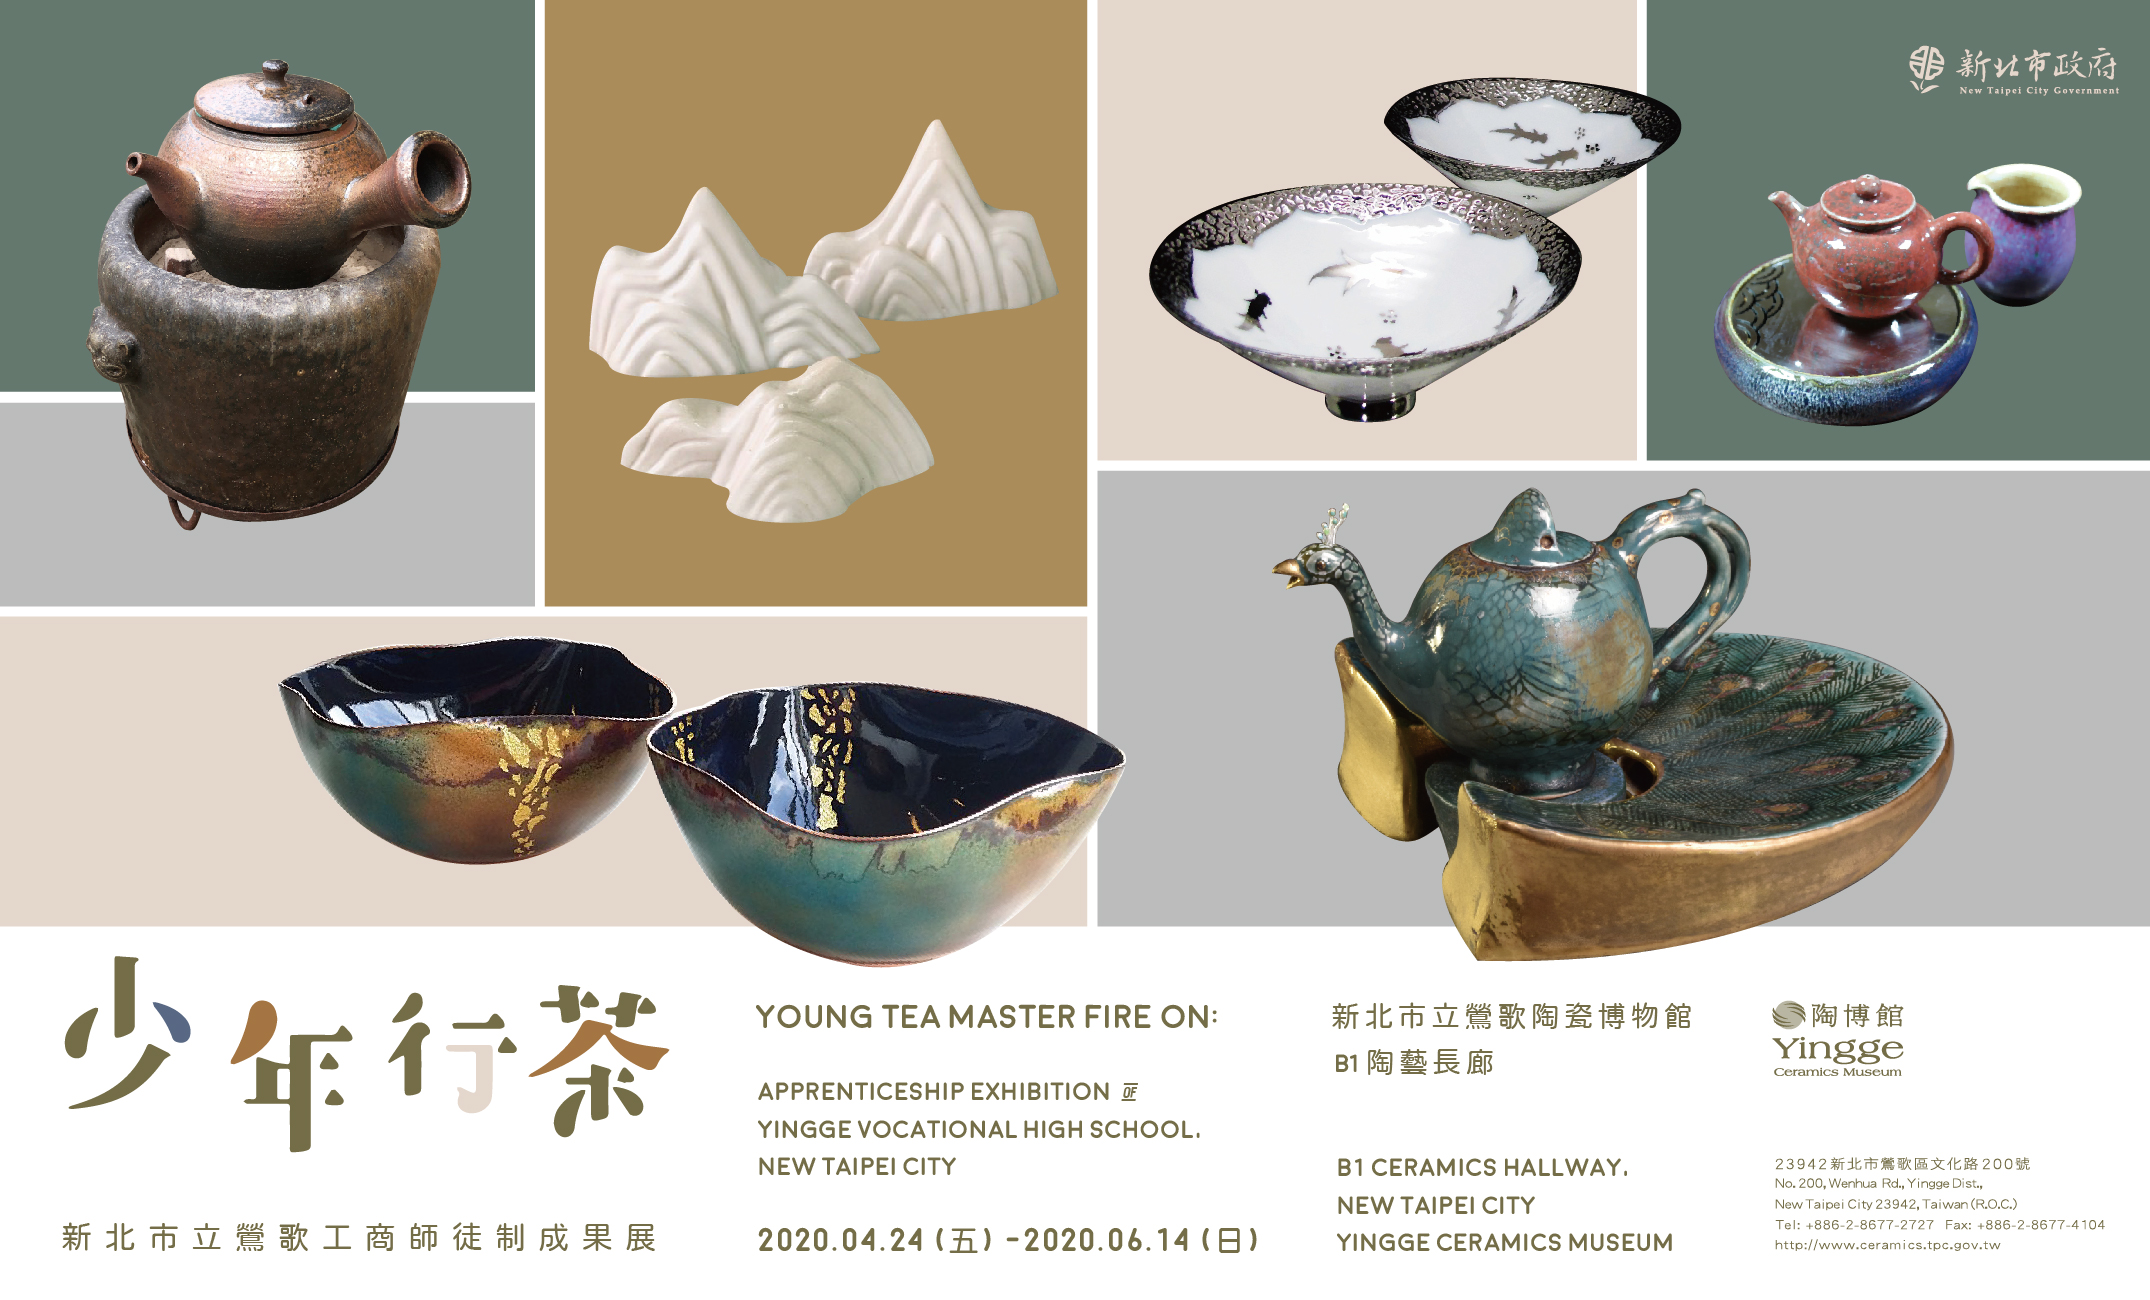 Young Tea Master Fire on: Apprenticeship Exhibition of Yingge Vocational High School, New Taipei Cit